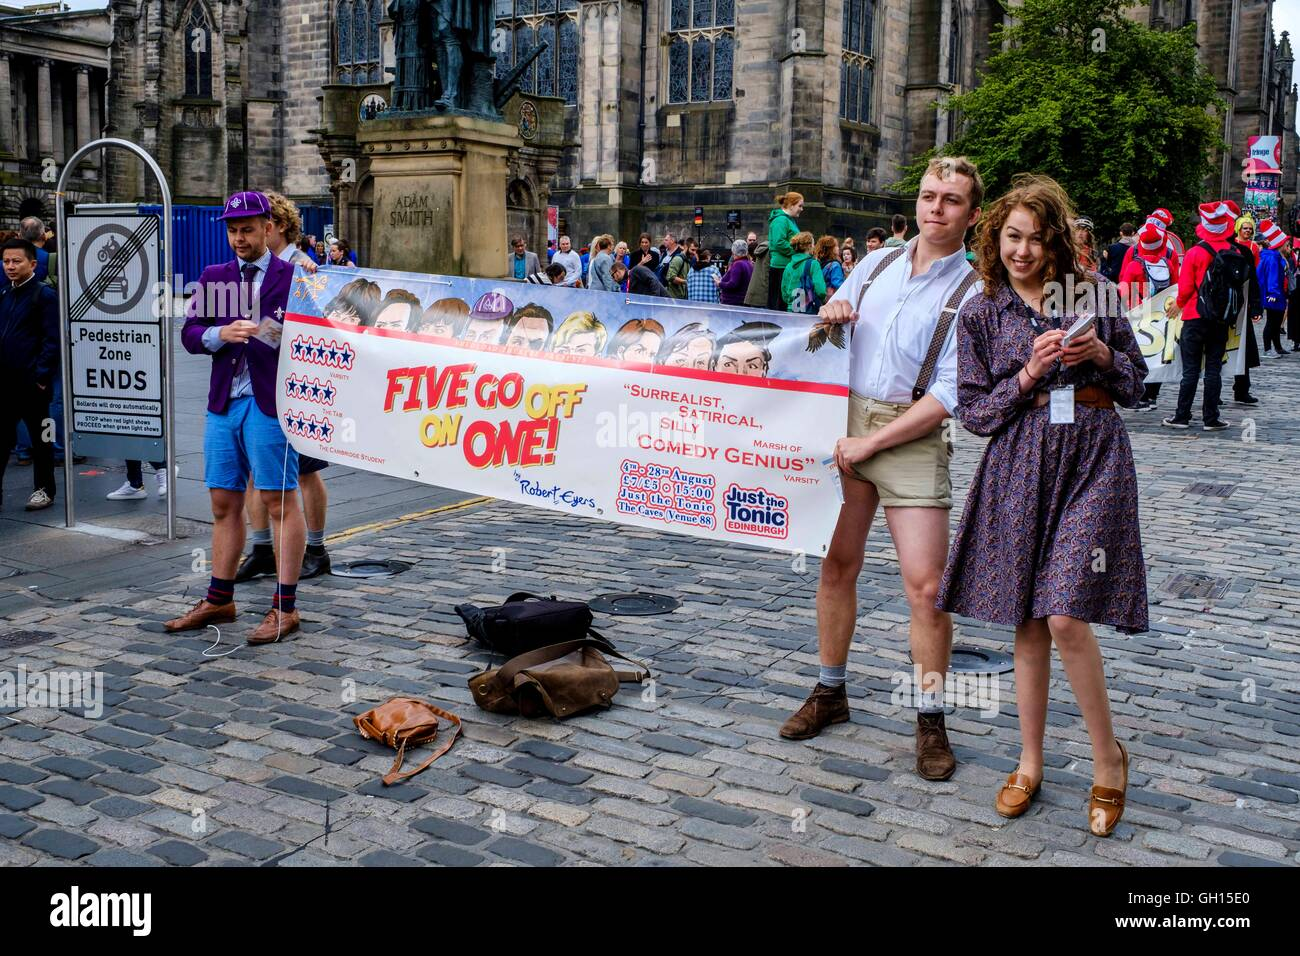 Edinburgh, Scotland, UK. 7th August, 2016. Performers from Fringe shows entertain in the High Street to promote - Stock Image